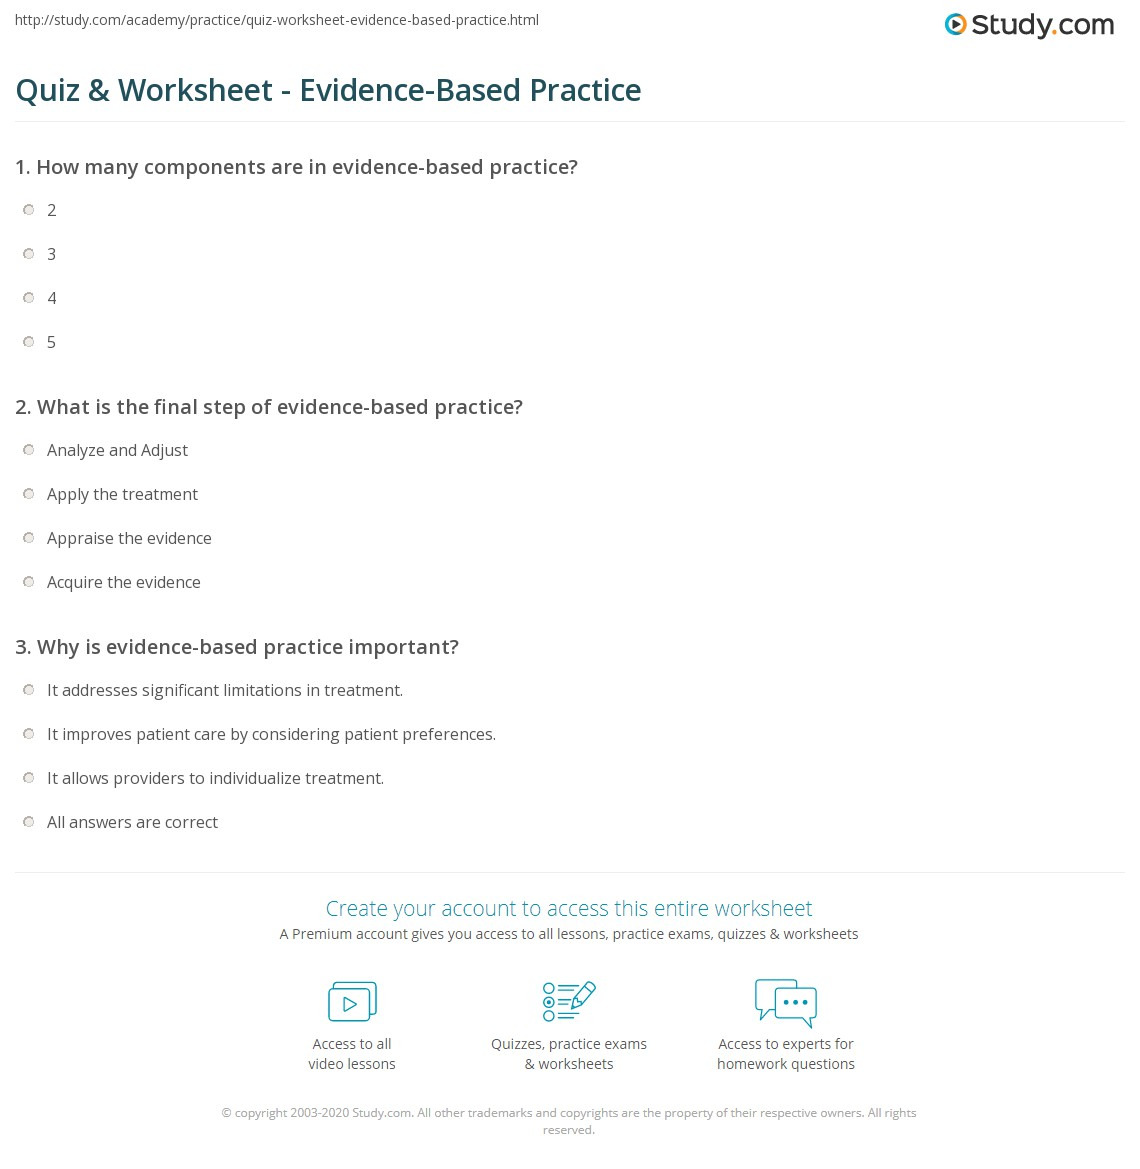 quiz & worksheet - evidence-based practice | study